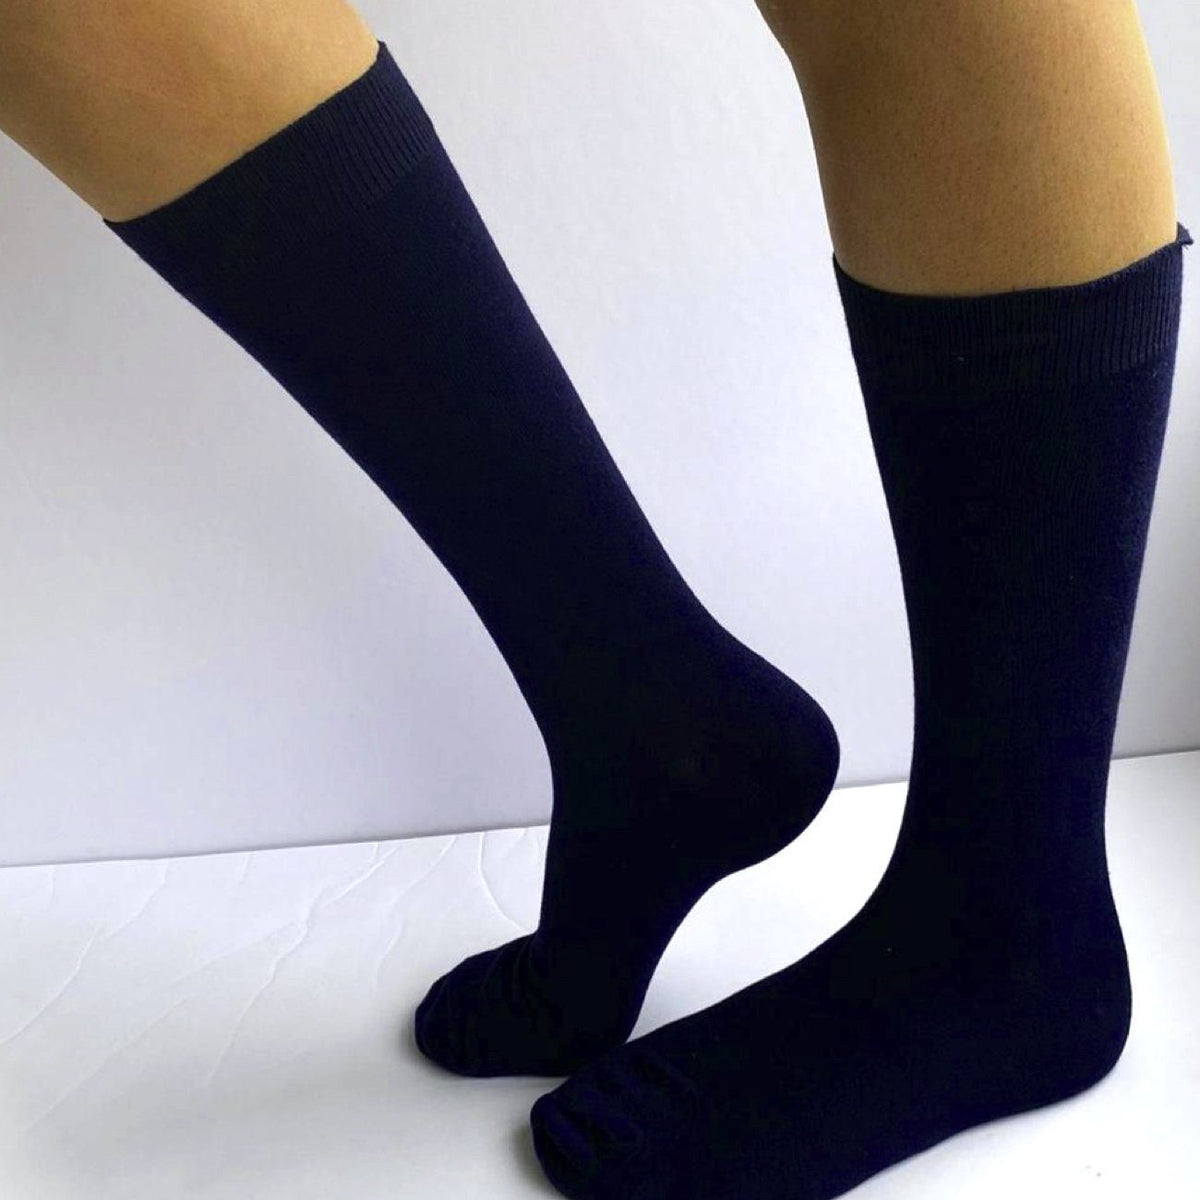 Dr Socks, 95% Cotton, 5% Elastane, Loose top, No Toe Seam, Navy